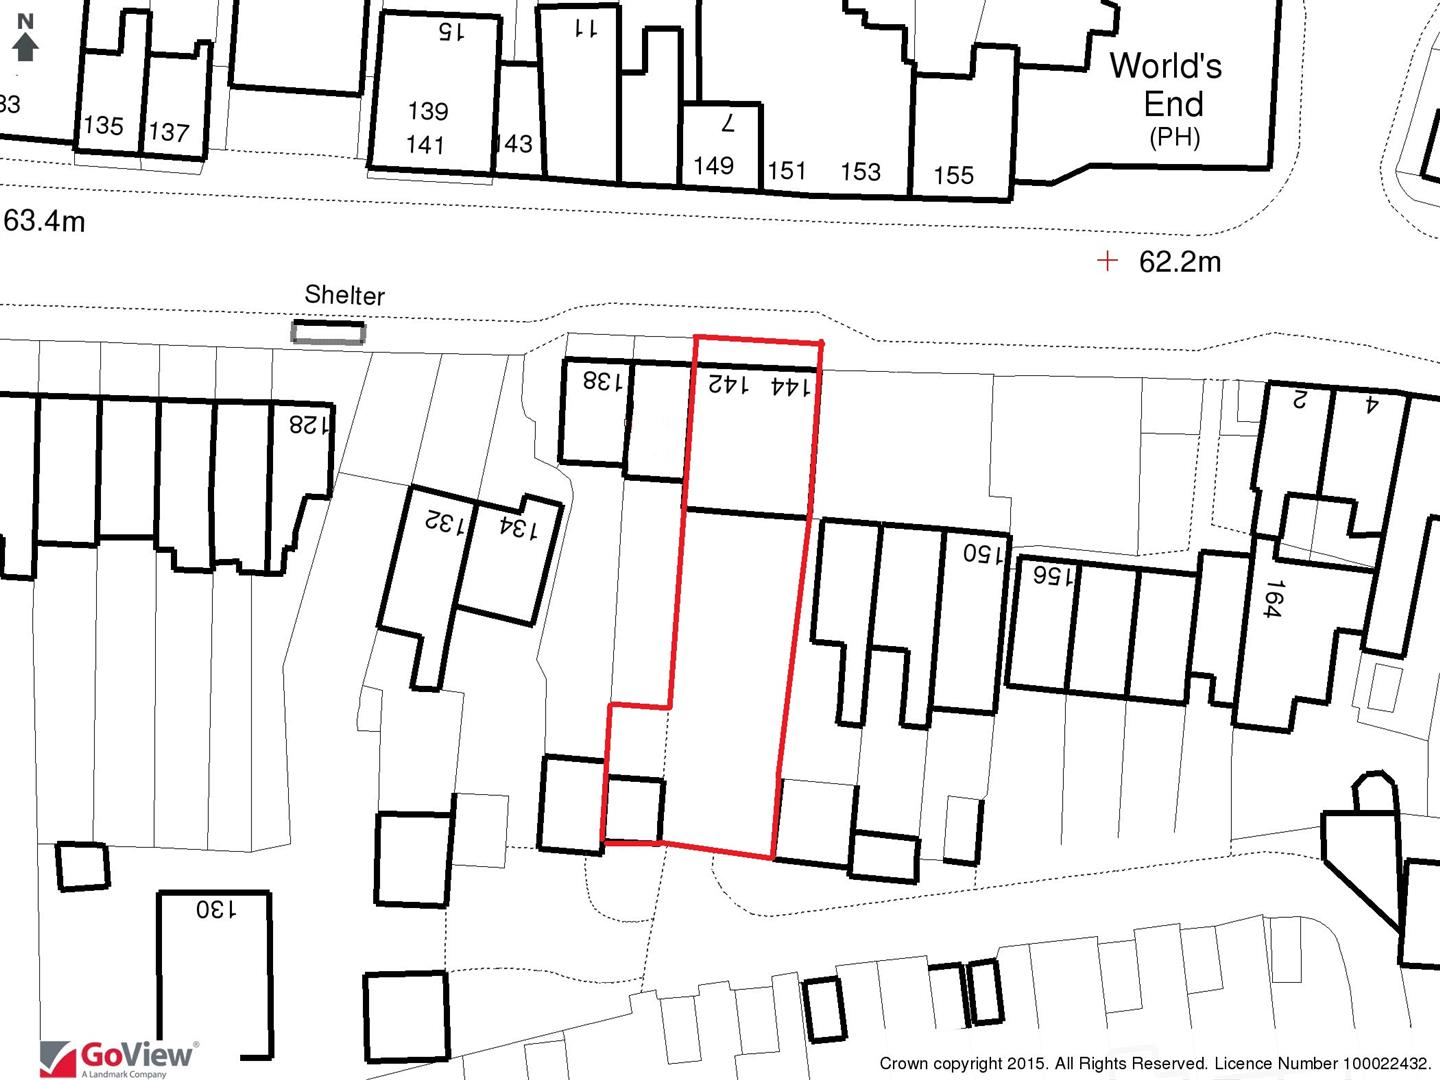 Images for MIXED USE - 2 FLATS / 2 RETAIL UNITS EAID:hollismoapi BID:11